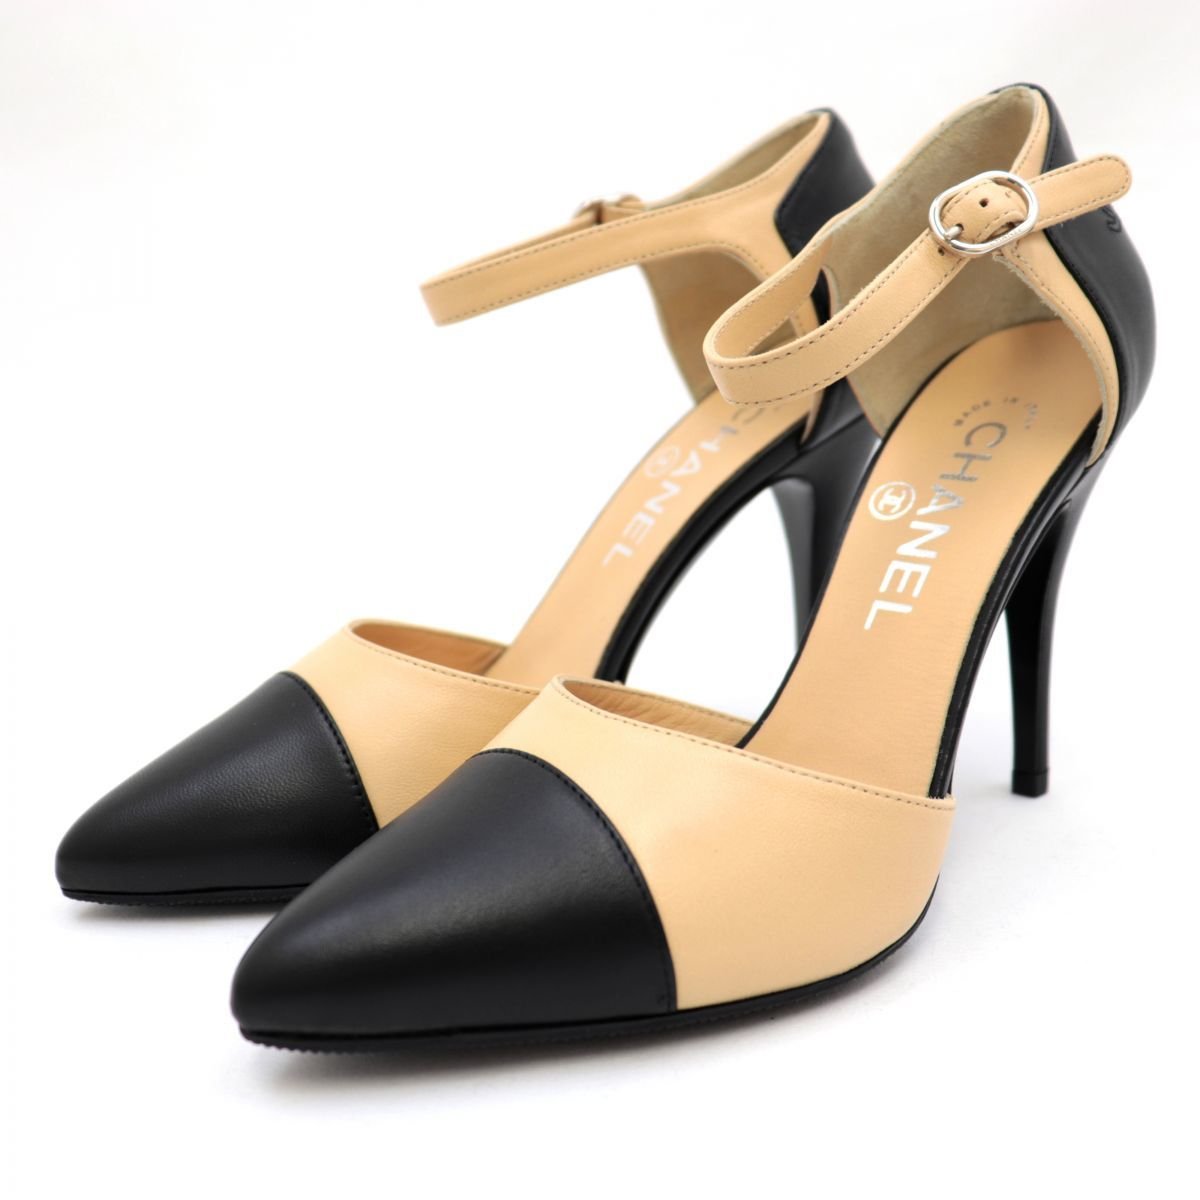 Chanel 13S Ankle Strap Leather Heel Pumps Women's Beige Black 36.5 Coco Mark Stitch Pointed Toe Separate Bicolor